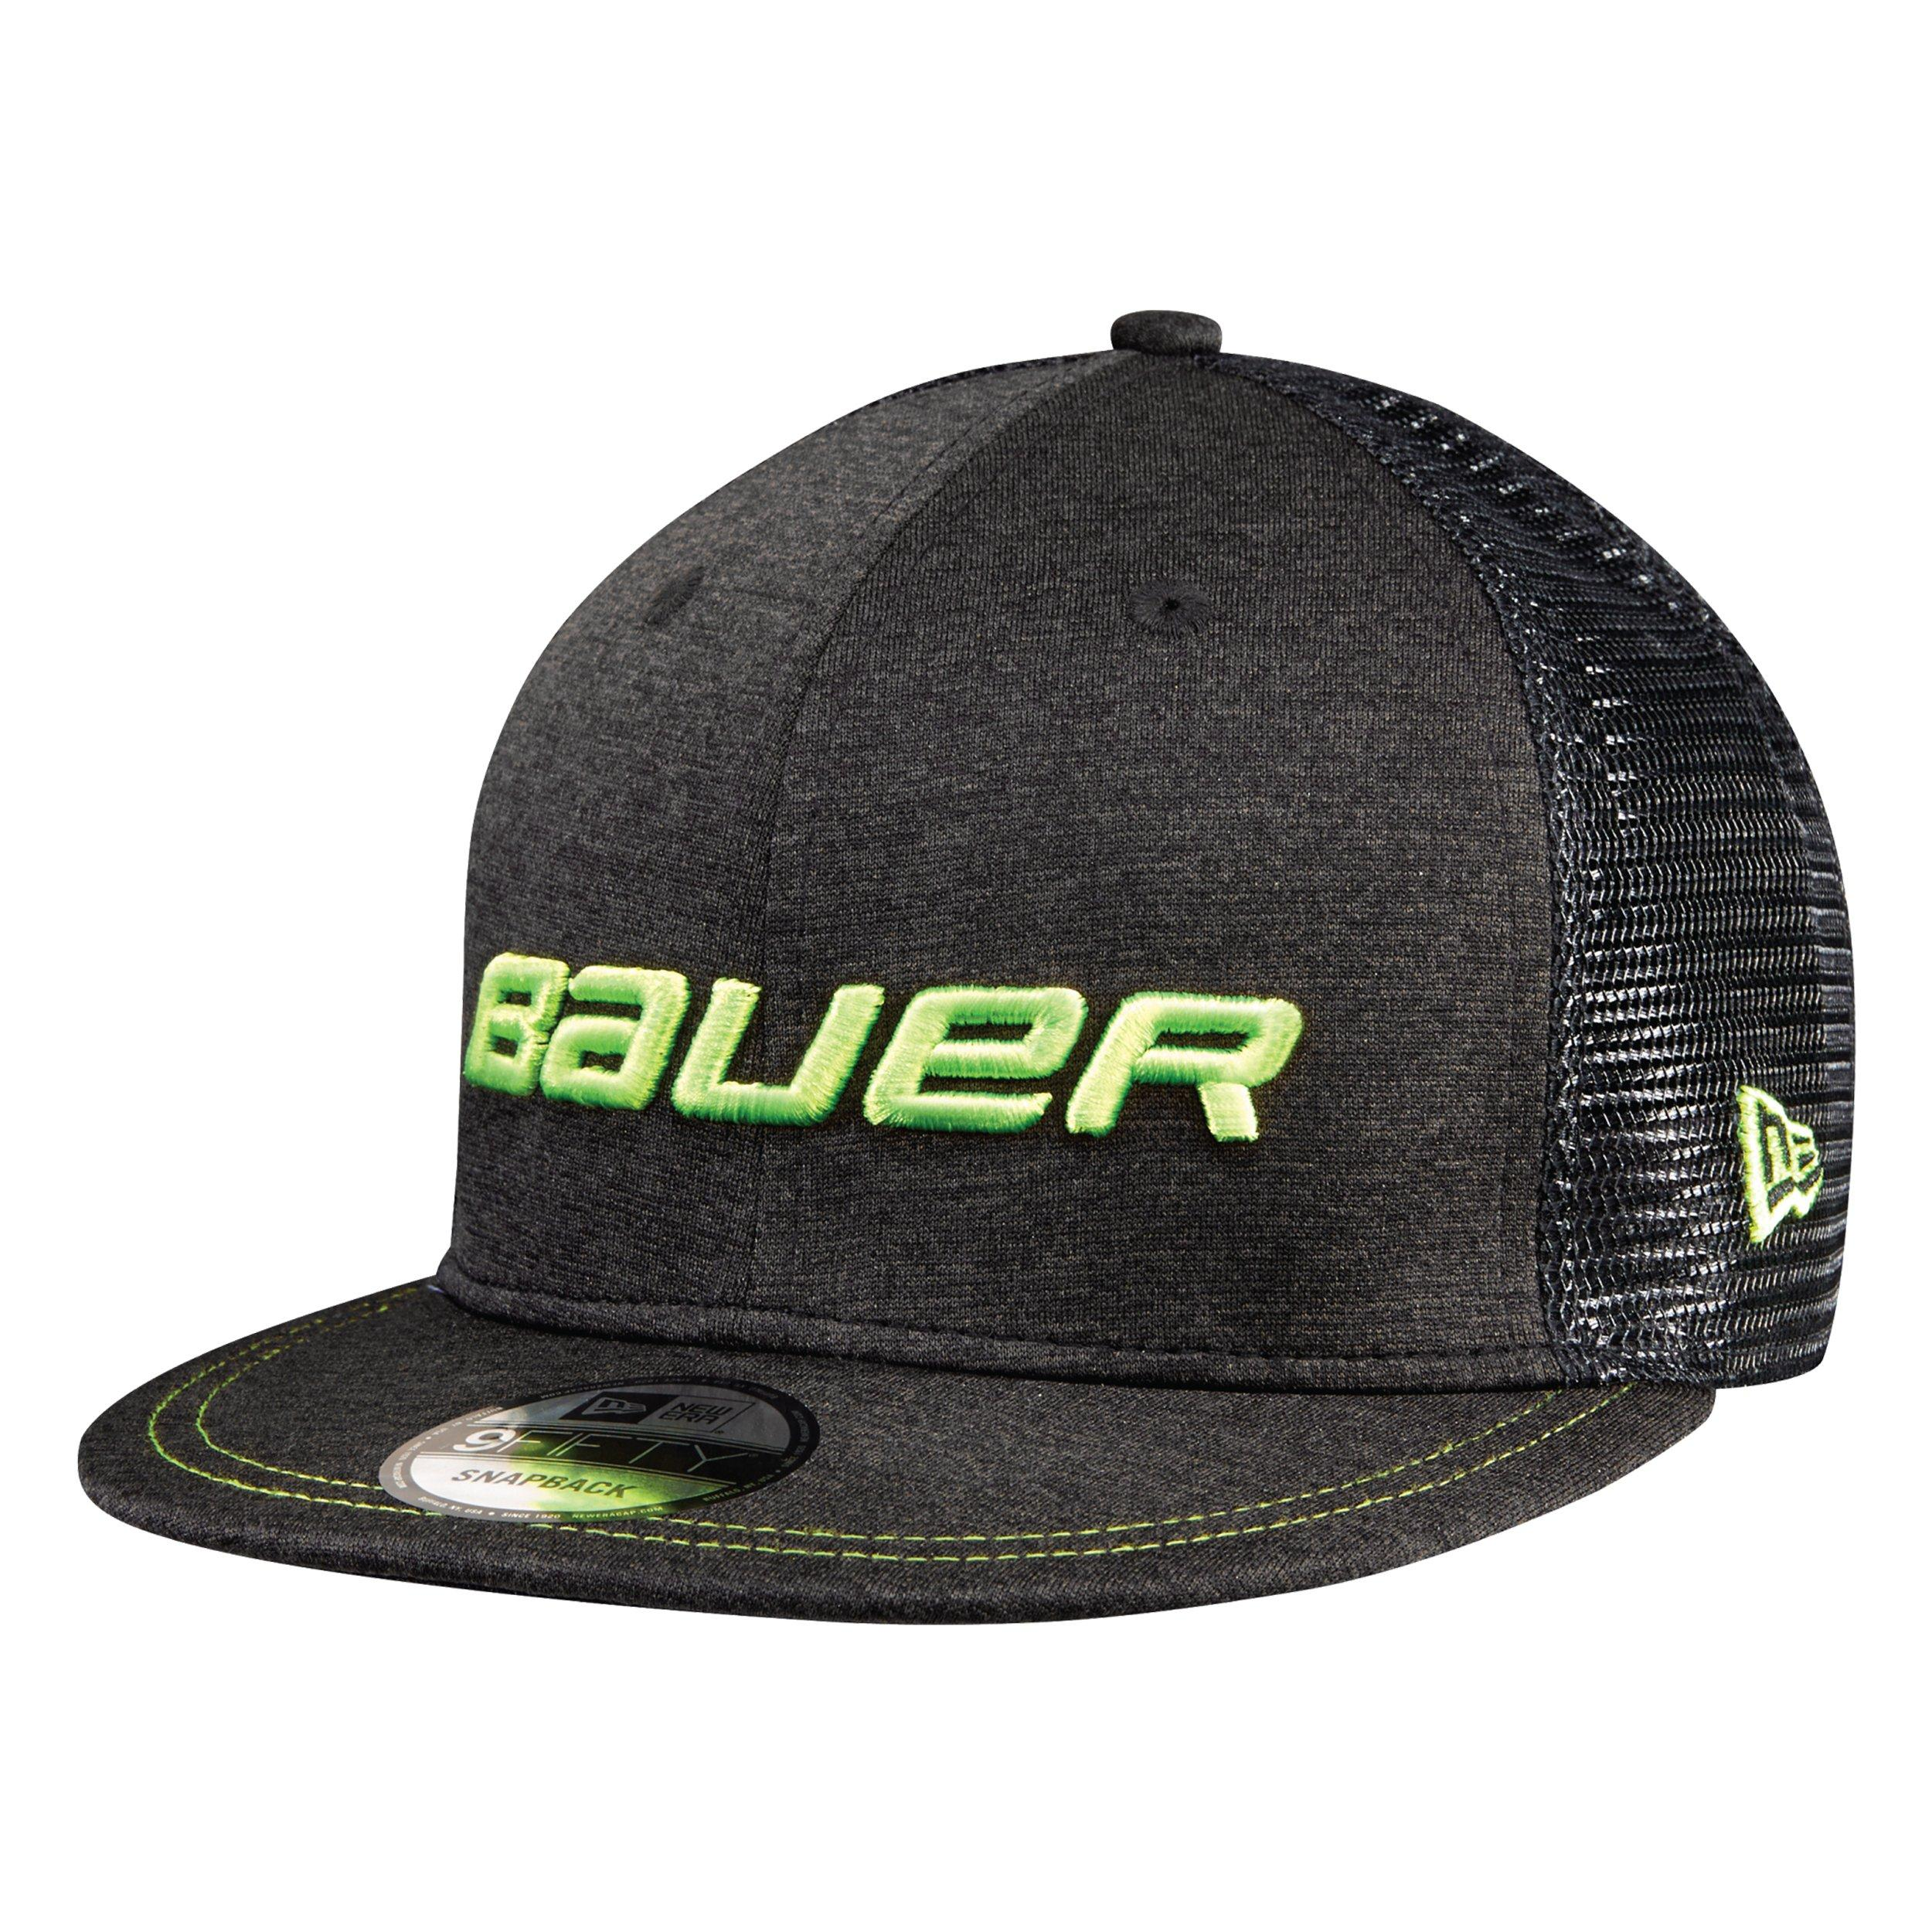 BAUER / New Era® 9FIFTY® Color Pop Adjustable Cap Senior - Lime